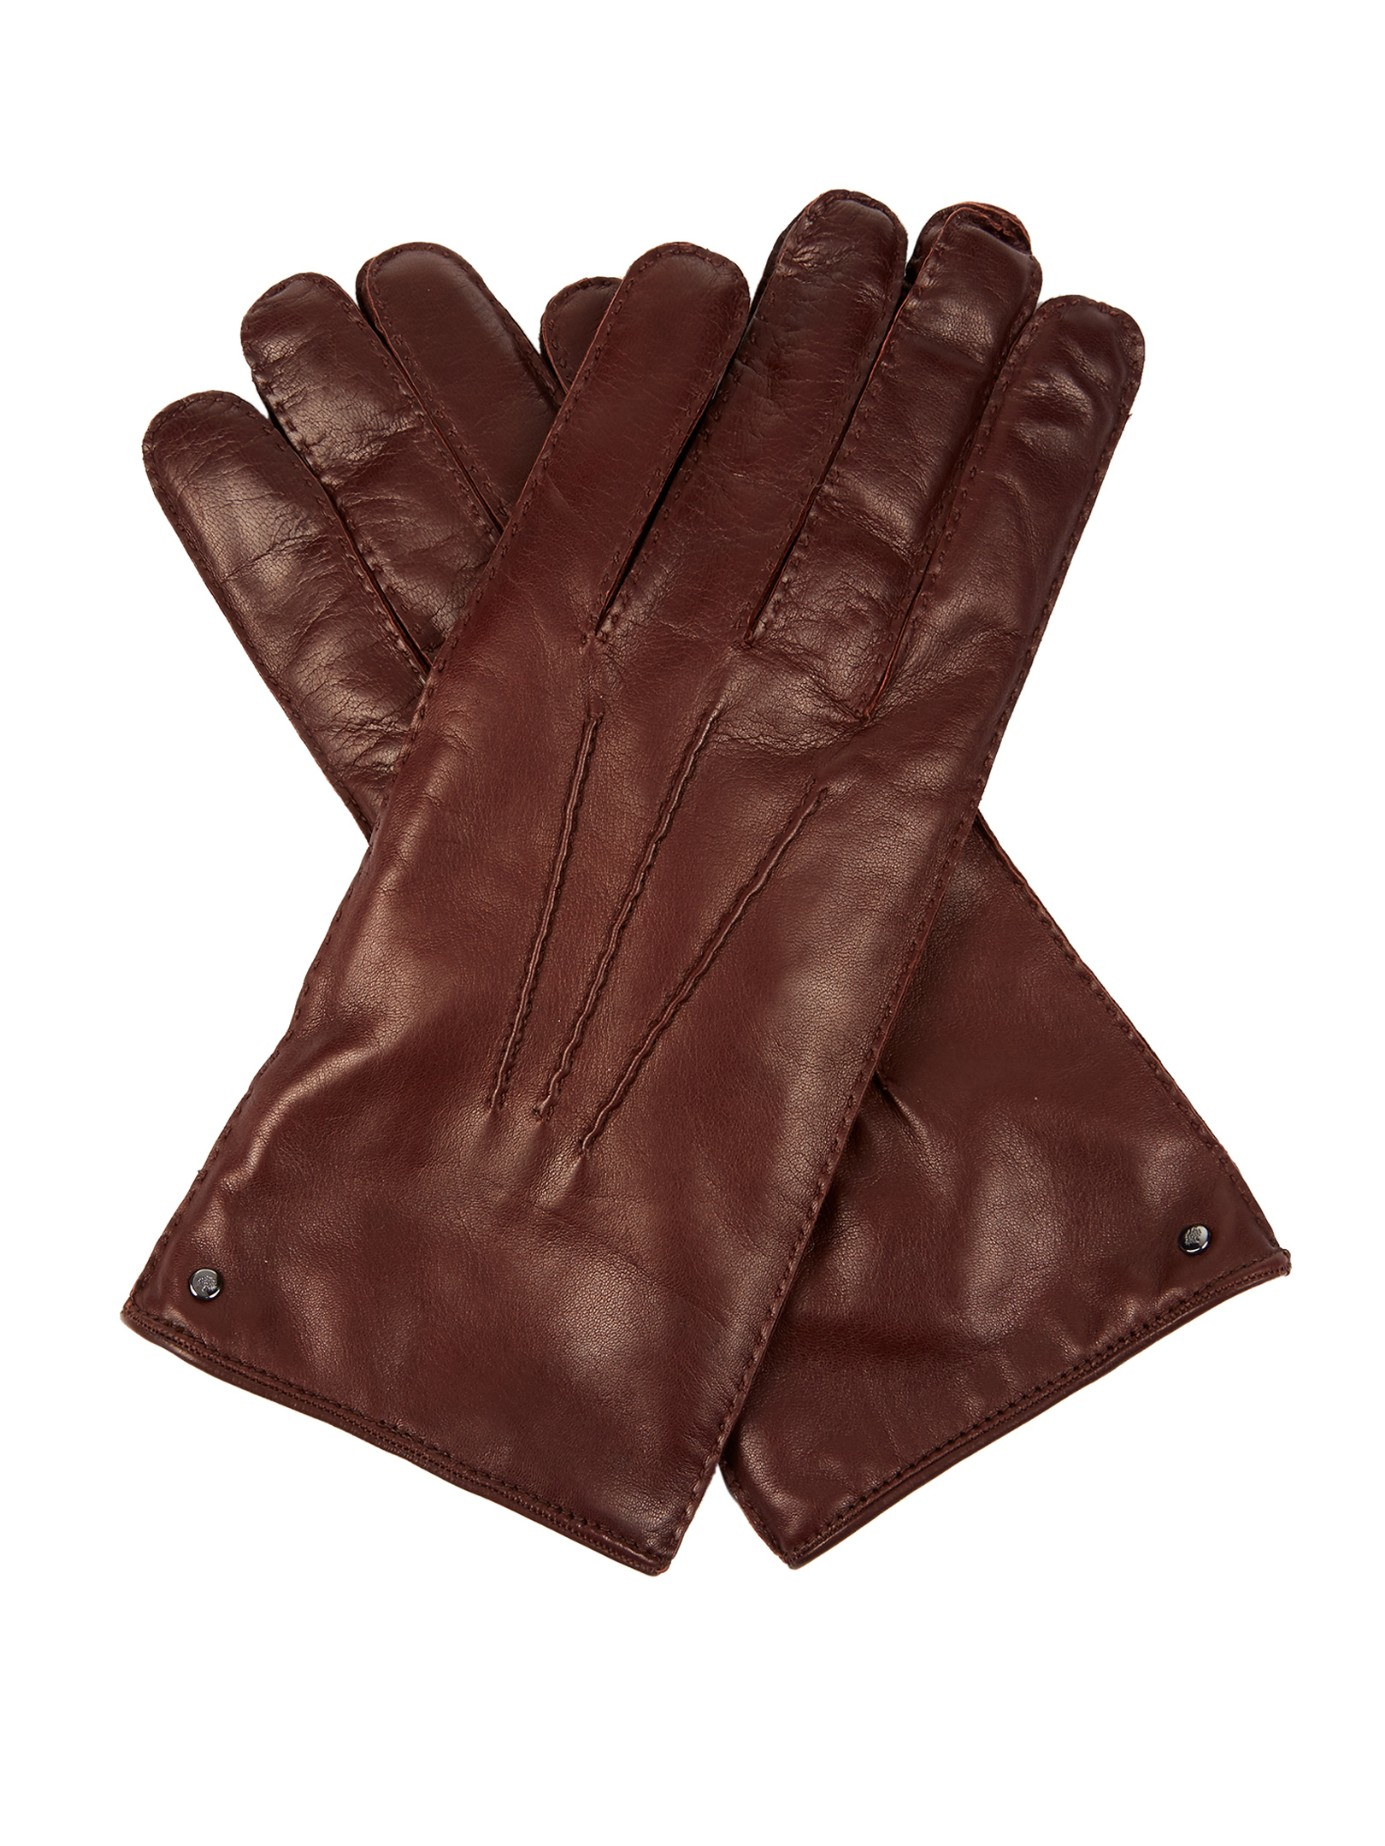 Buy Brown Leather Gloves for Men from the largest selection of Leather Gloves anywhere, Free USA Shipping Both Ways.